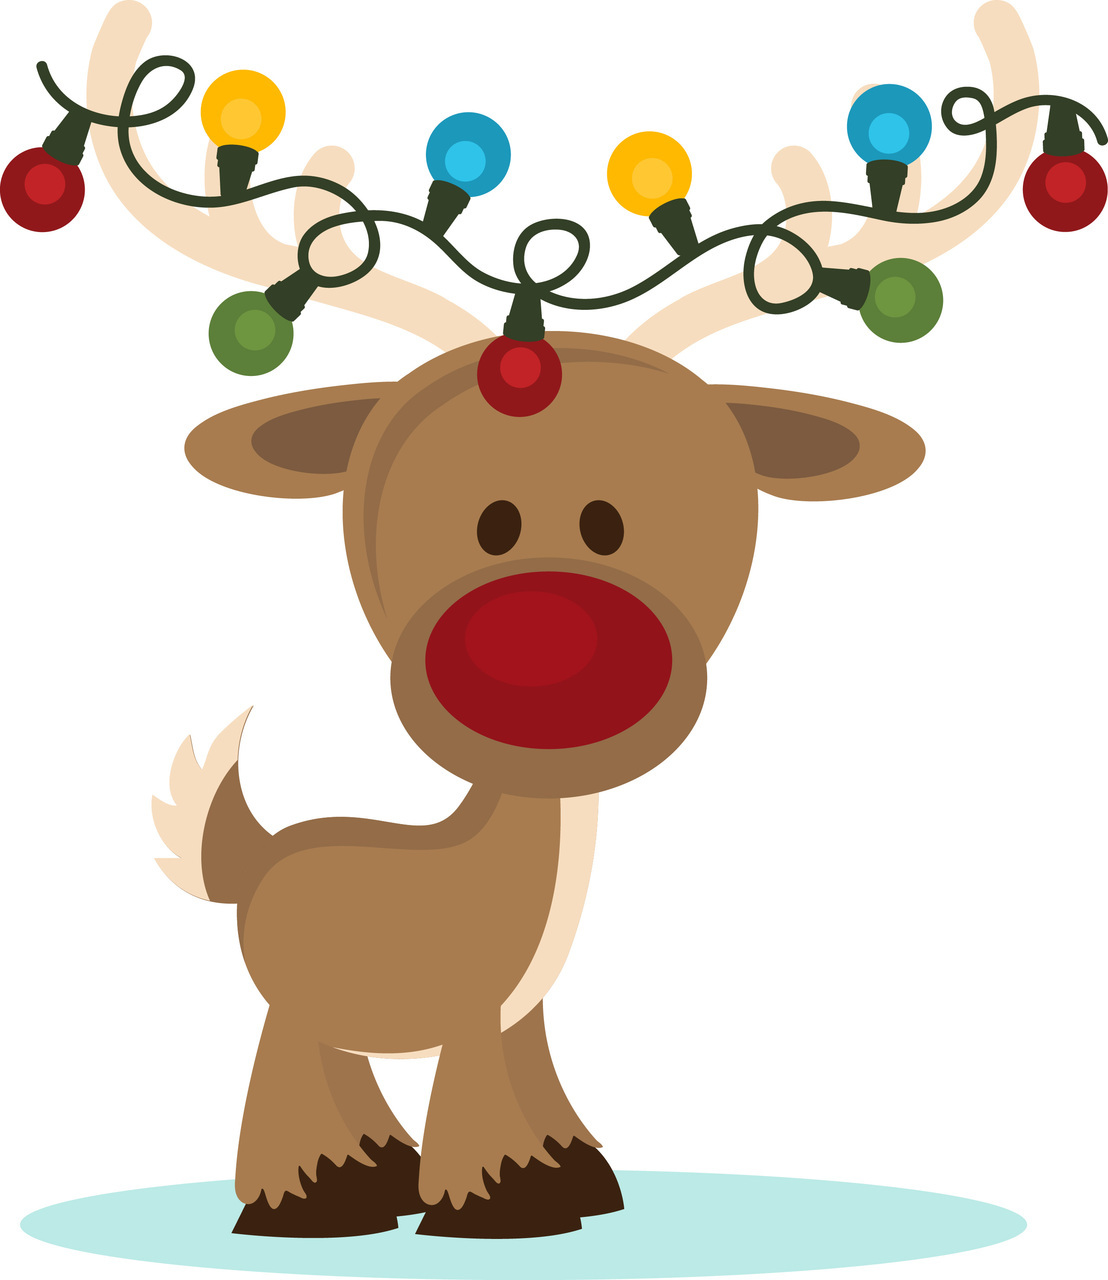 Country clipart reindeer (http://www $0 $0 Designs Christmas